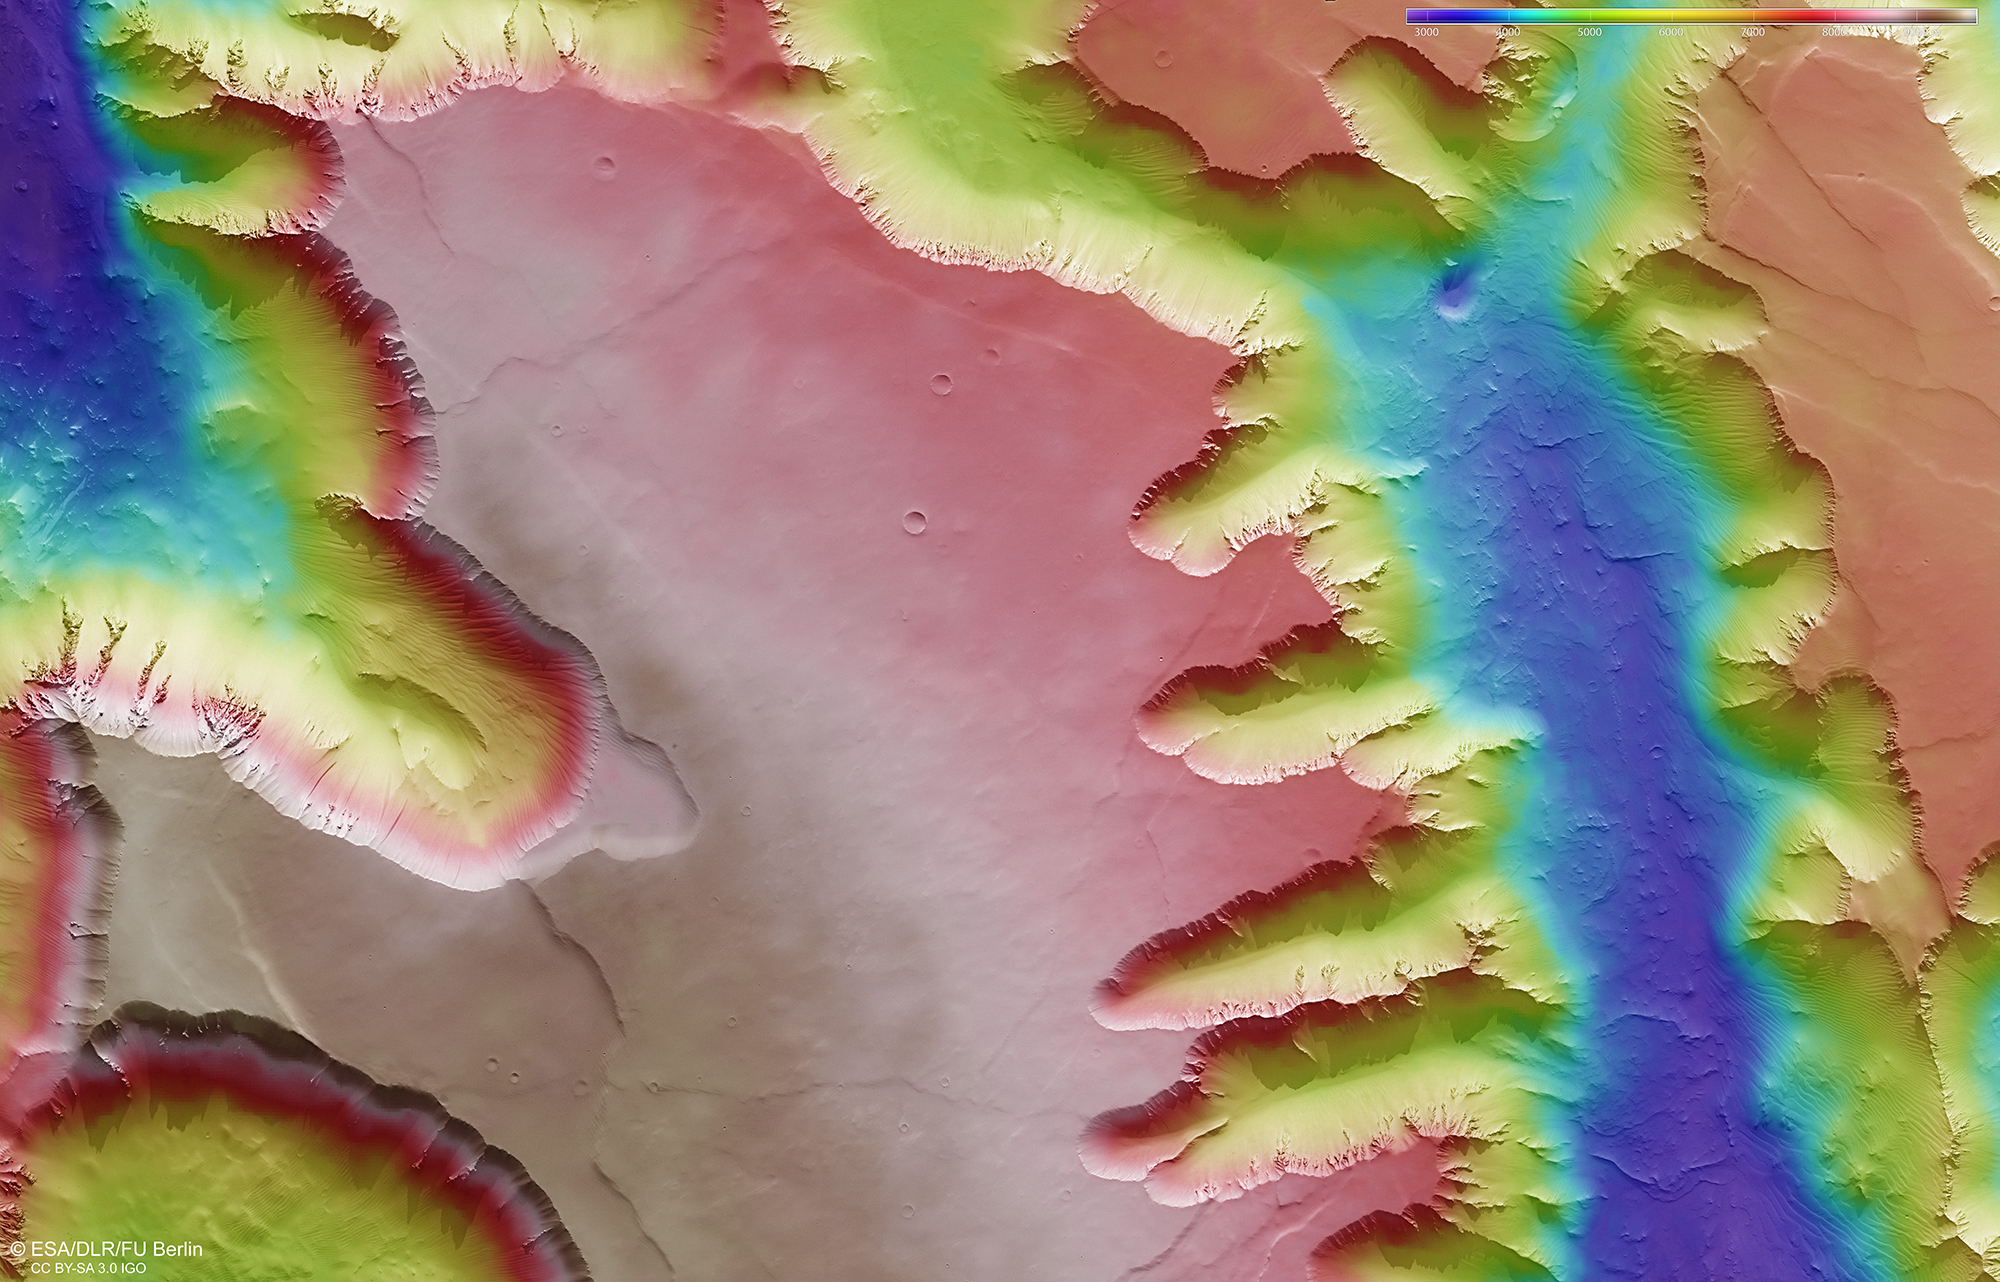 Noctis_Labyrinthus_topography